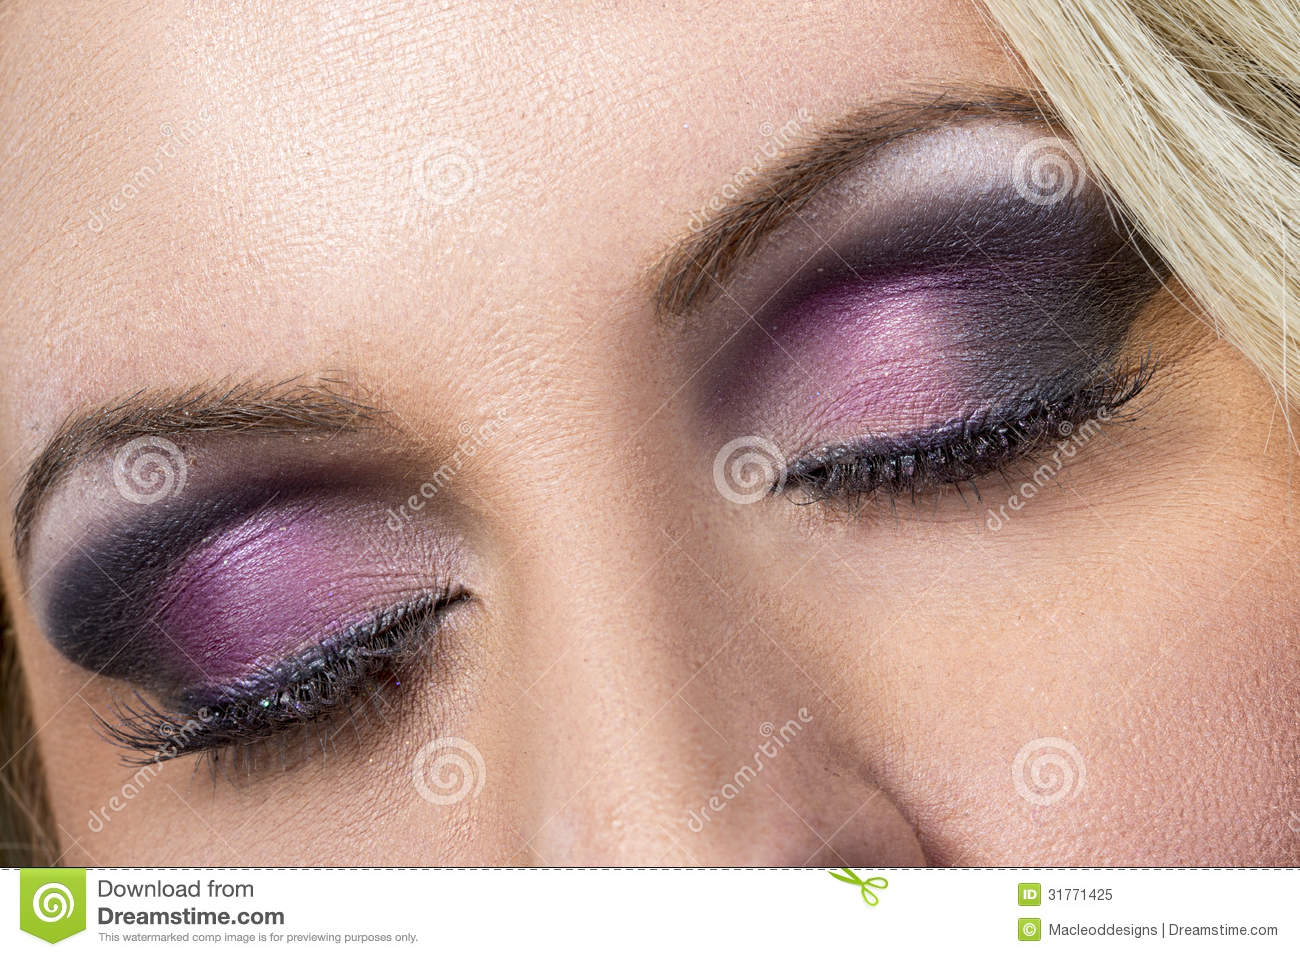 2019 year style- Makeup eye Smokey close up pictures